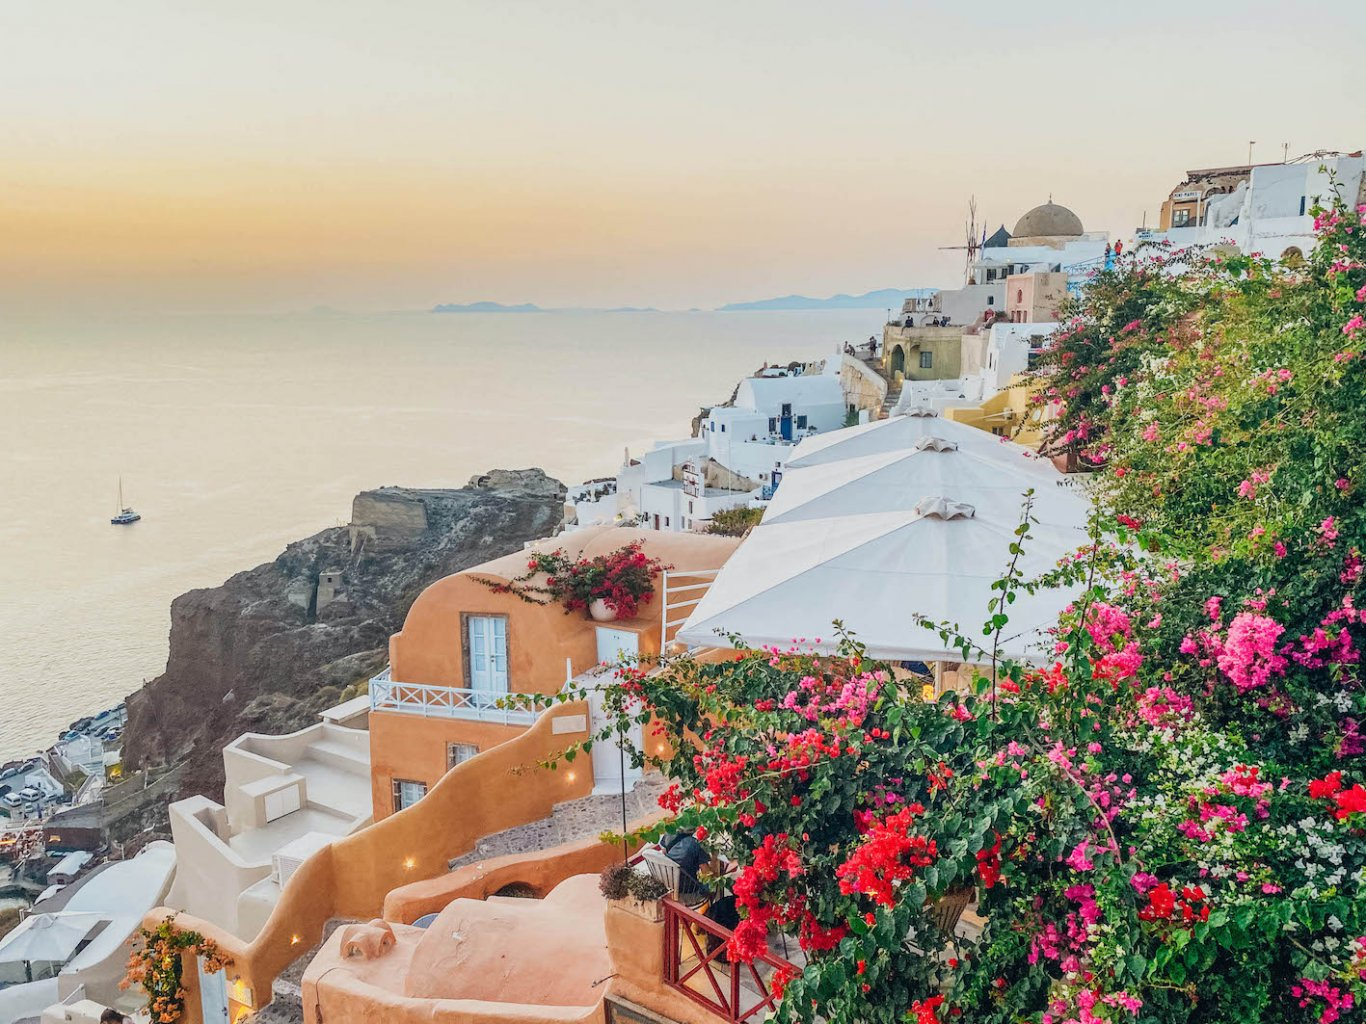 A photo of the sunset in Oia, Santorini, Greece with red and pink flowers in view